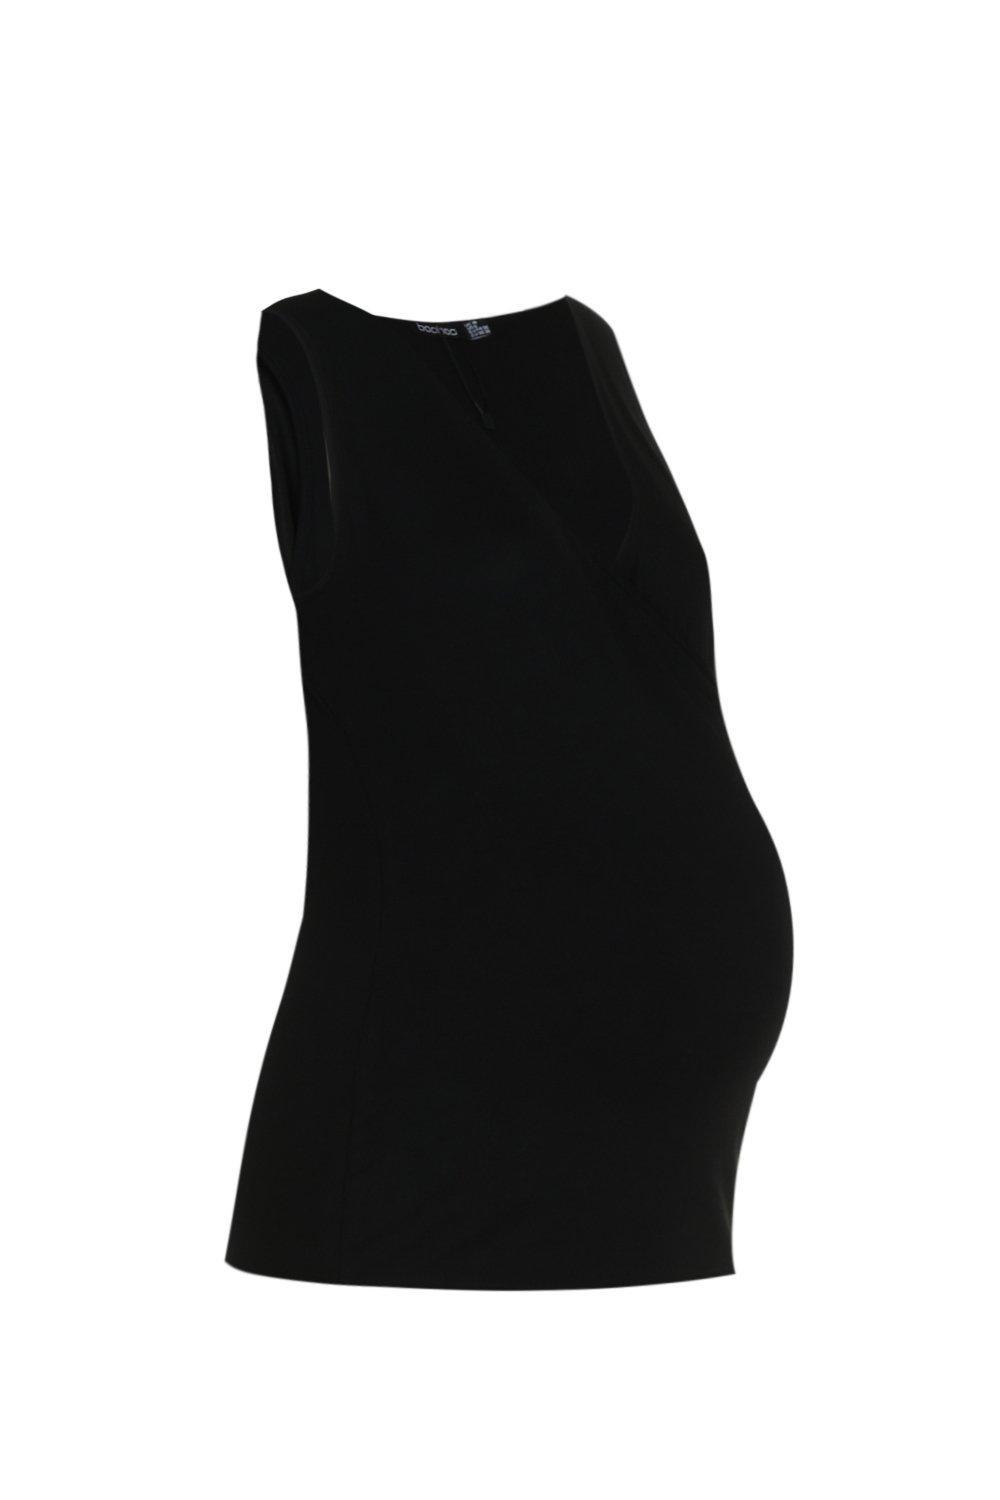 Boohoo Synthetic Maternity Wrap Front Vest Top in Black